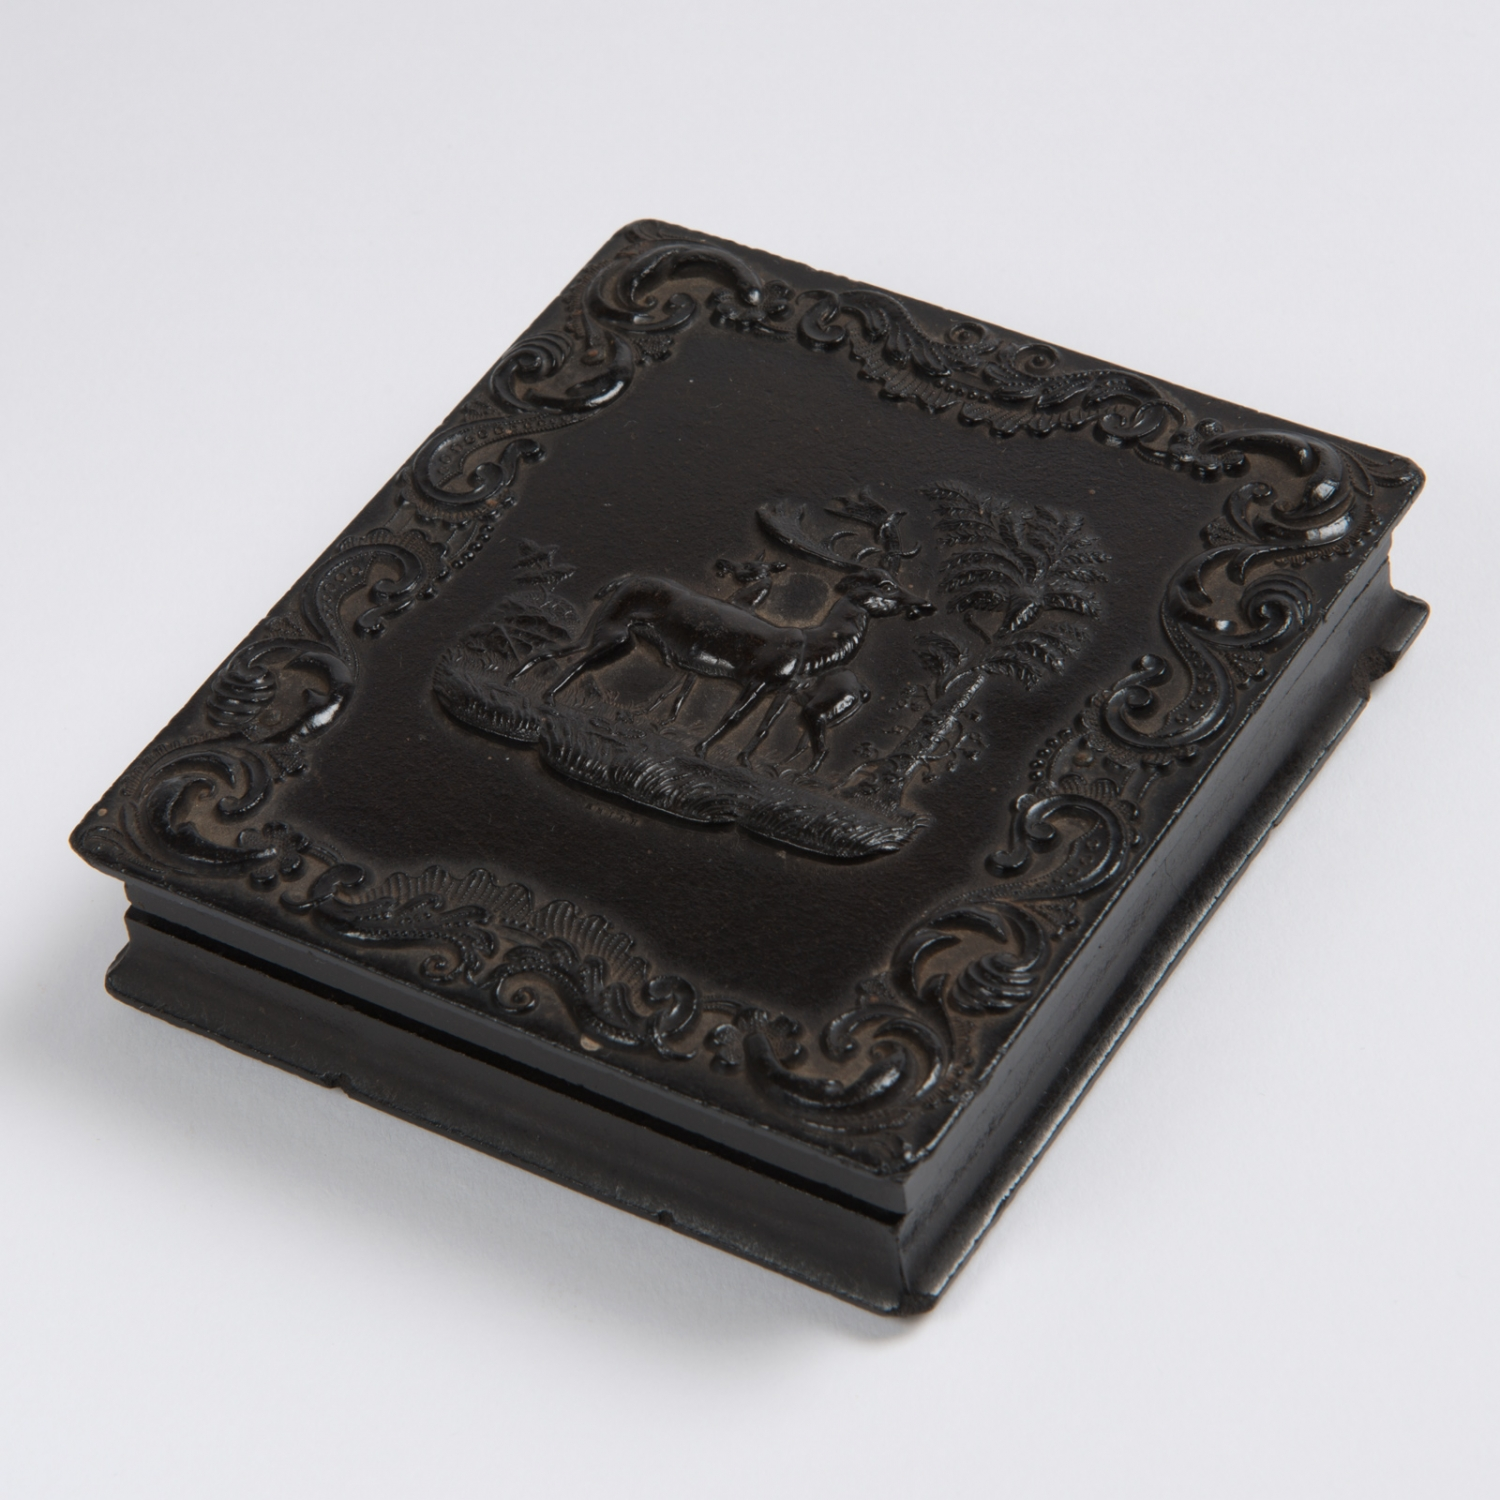 Decorative composition case containing an Ambrotype portrait of Jessie Catherine Thorburn and her daughter Mary Susan, circa 1862